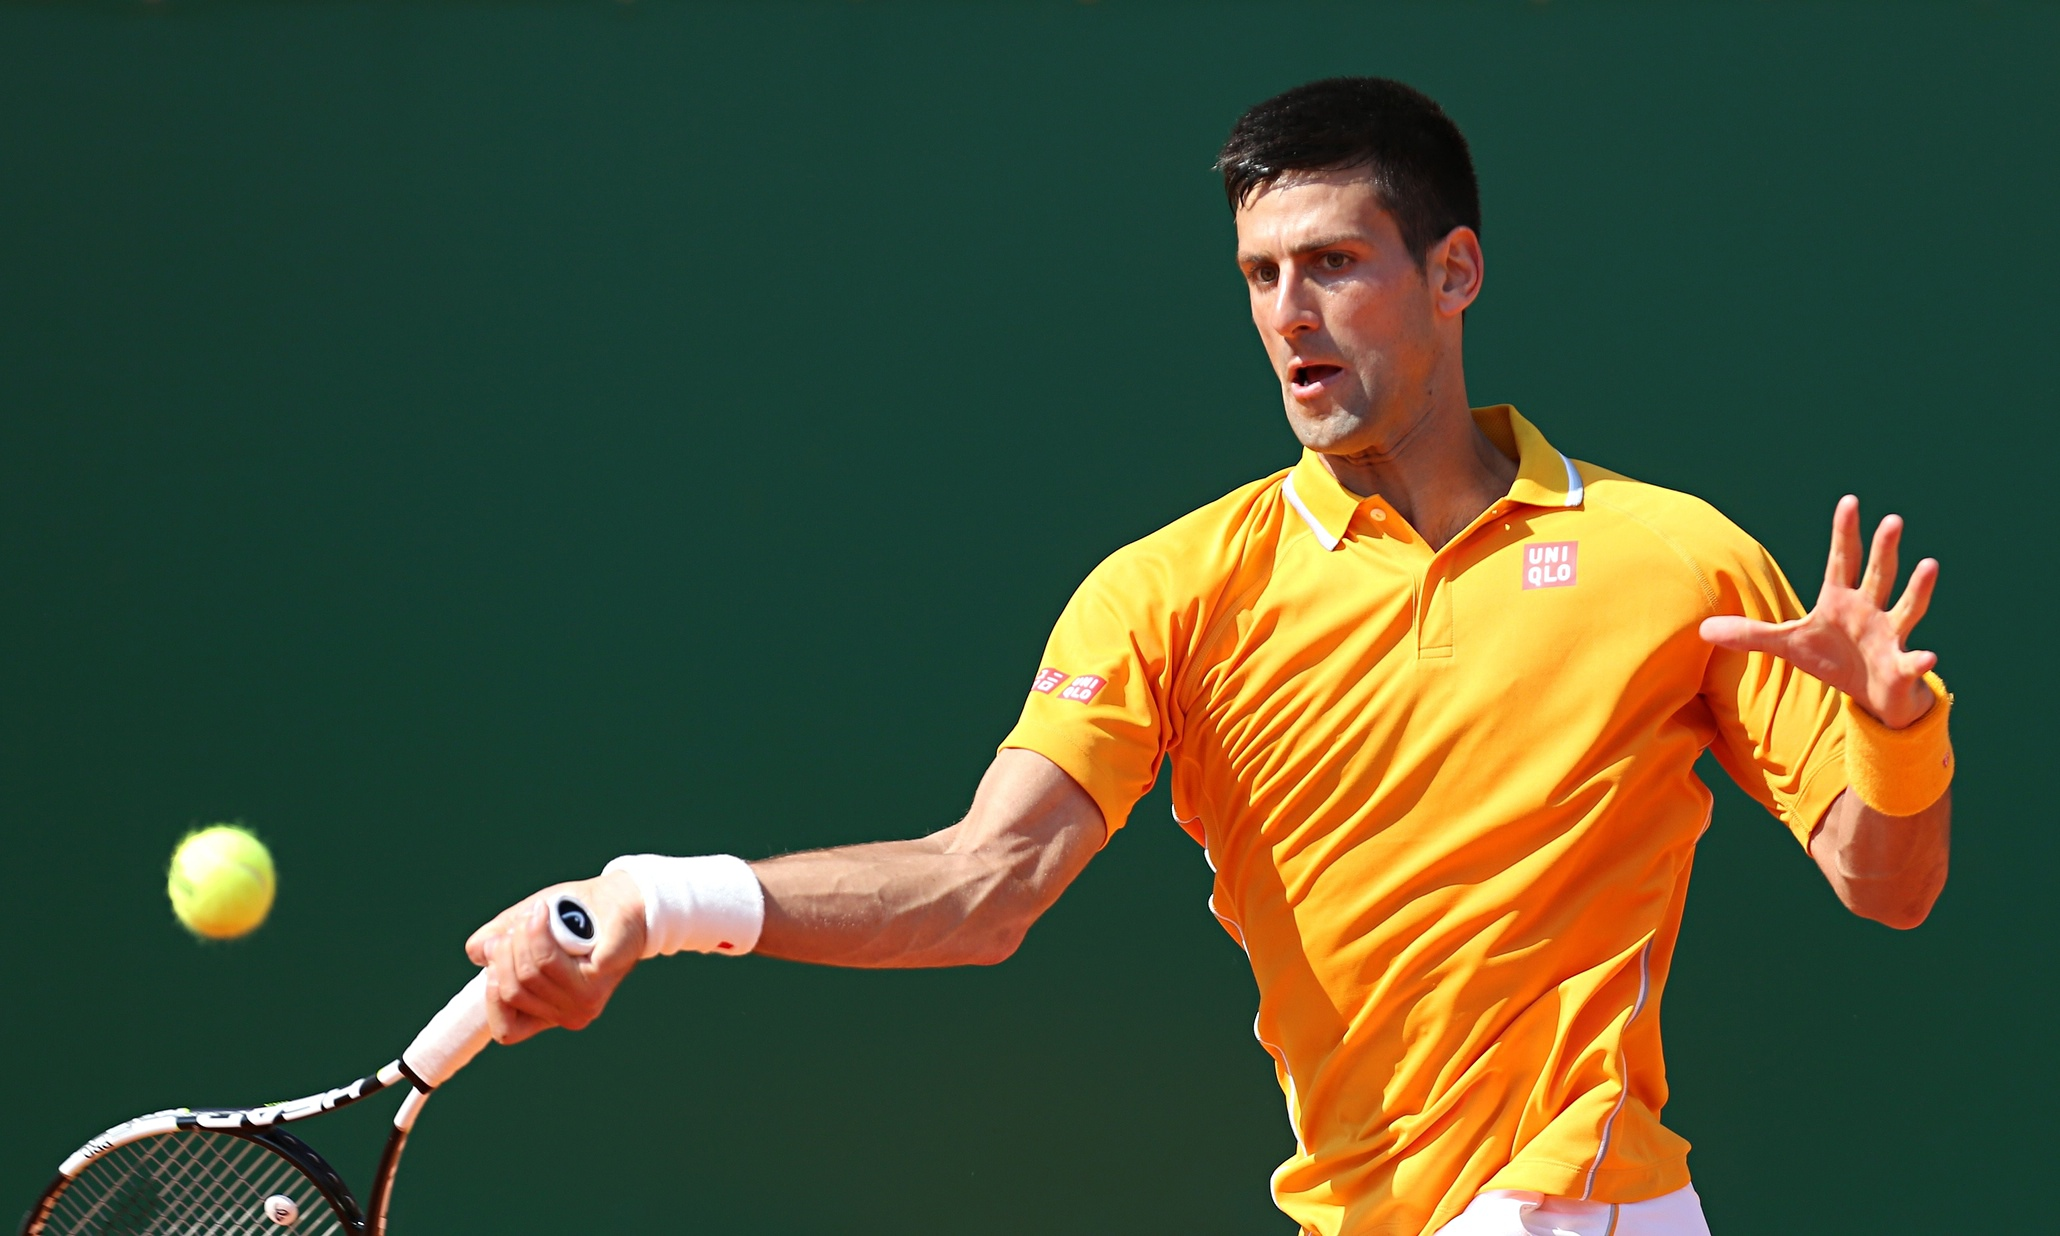 novak djokovic - photo #24